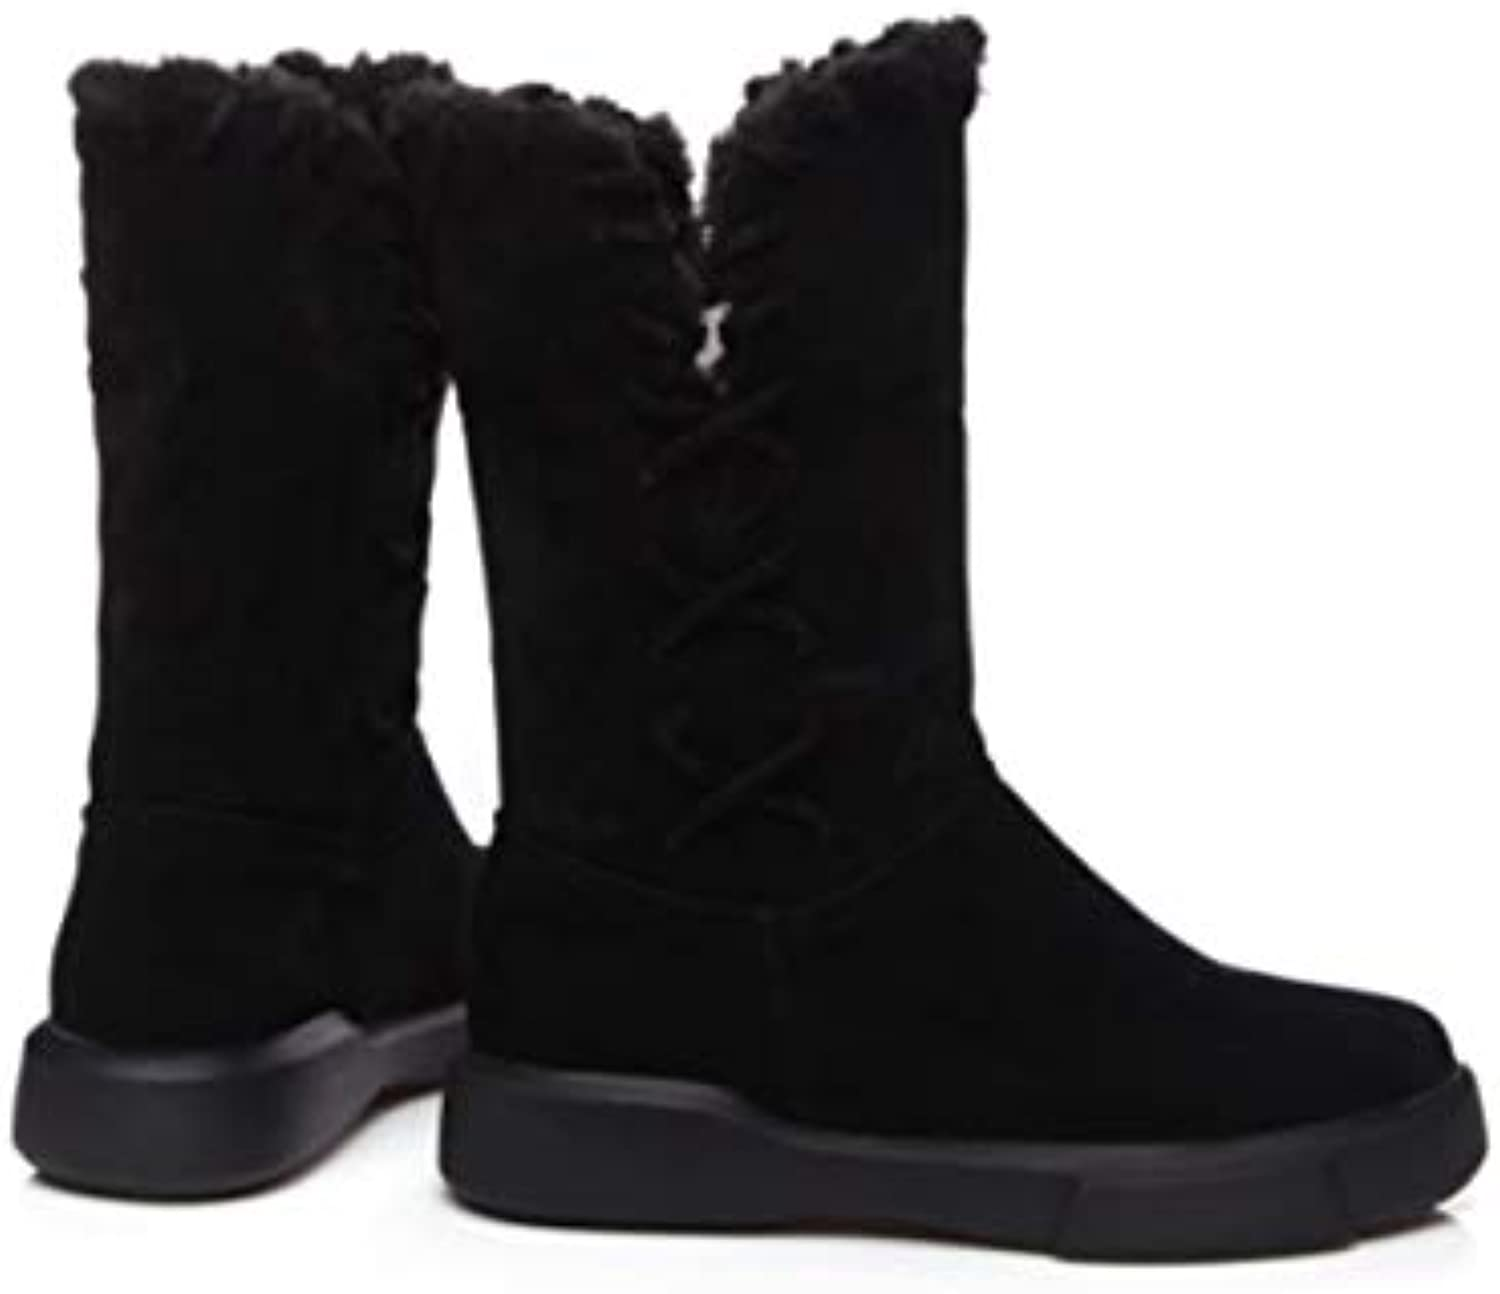 BBNL-Q DDL- Snow Boots Snow Boots 2018 Size 34-43 Women Boots Heels Slip-On Round Toe Office Lady shoes Woman Winter Boots Black Green SB182